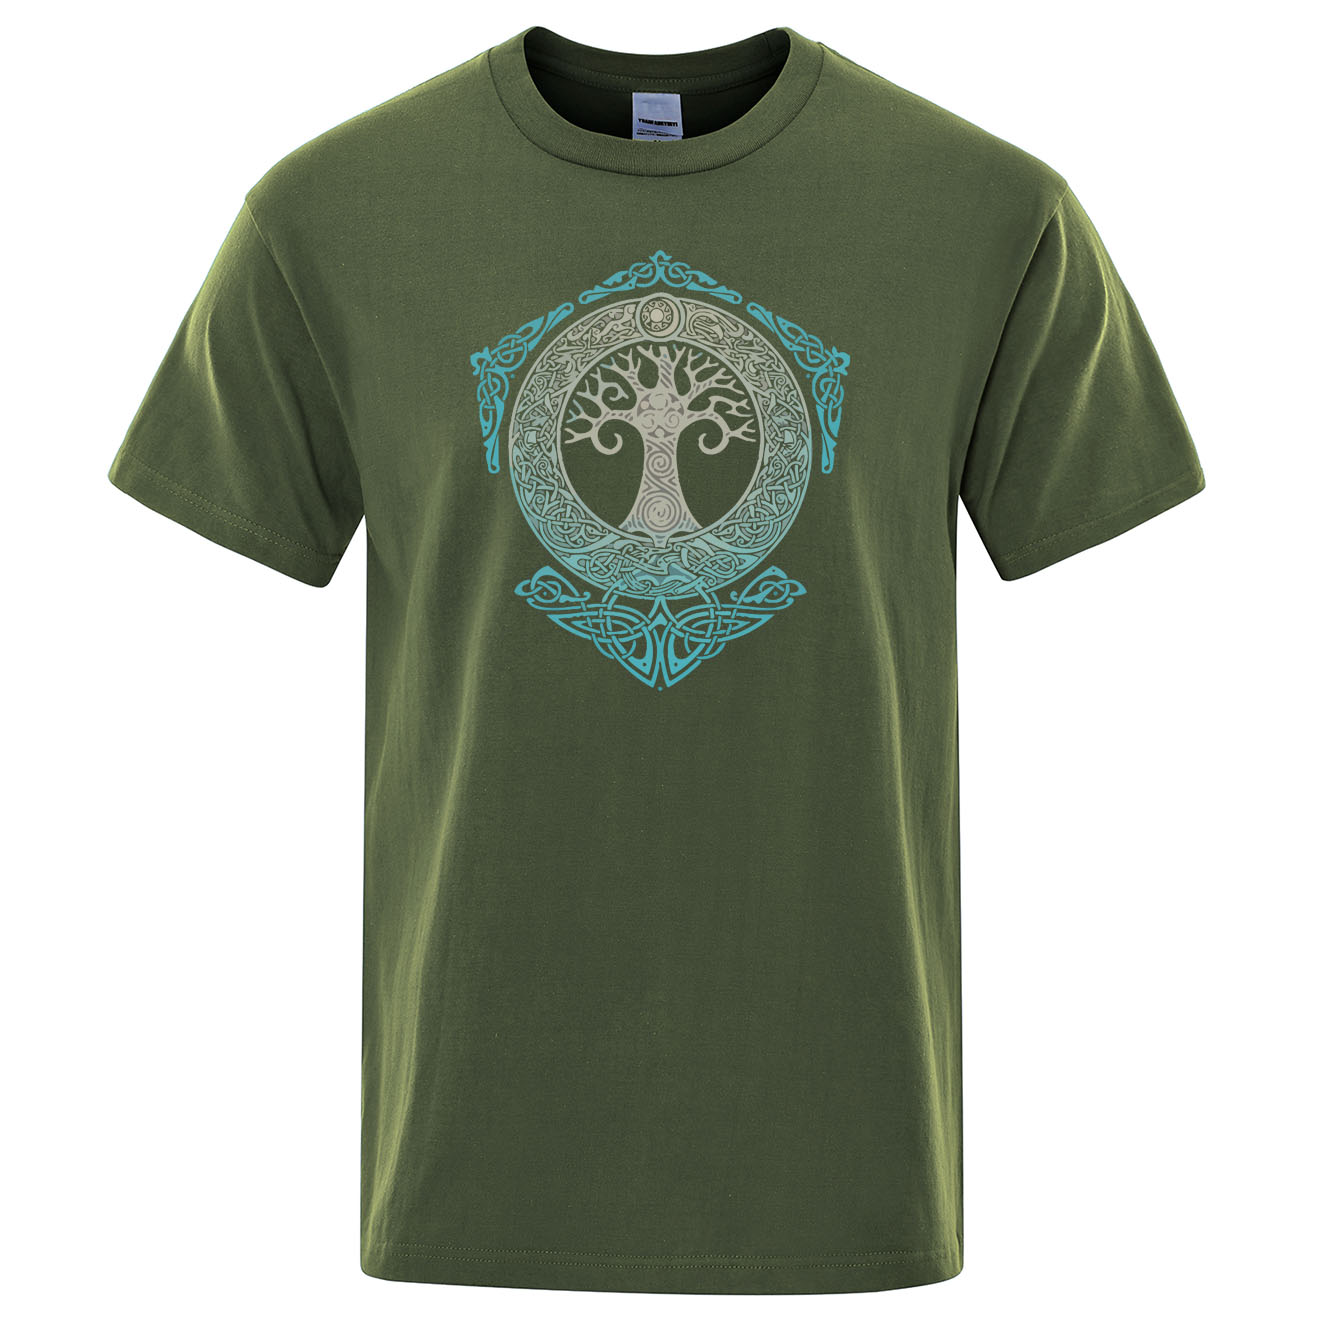 Yggdrasil T Shirt World Tree Men Tops Fashion Pattern Tee 2019 Summer Cotton T-Shirt Odin Aesir Nordic Mythology Men's Tshirt